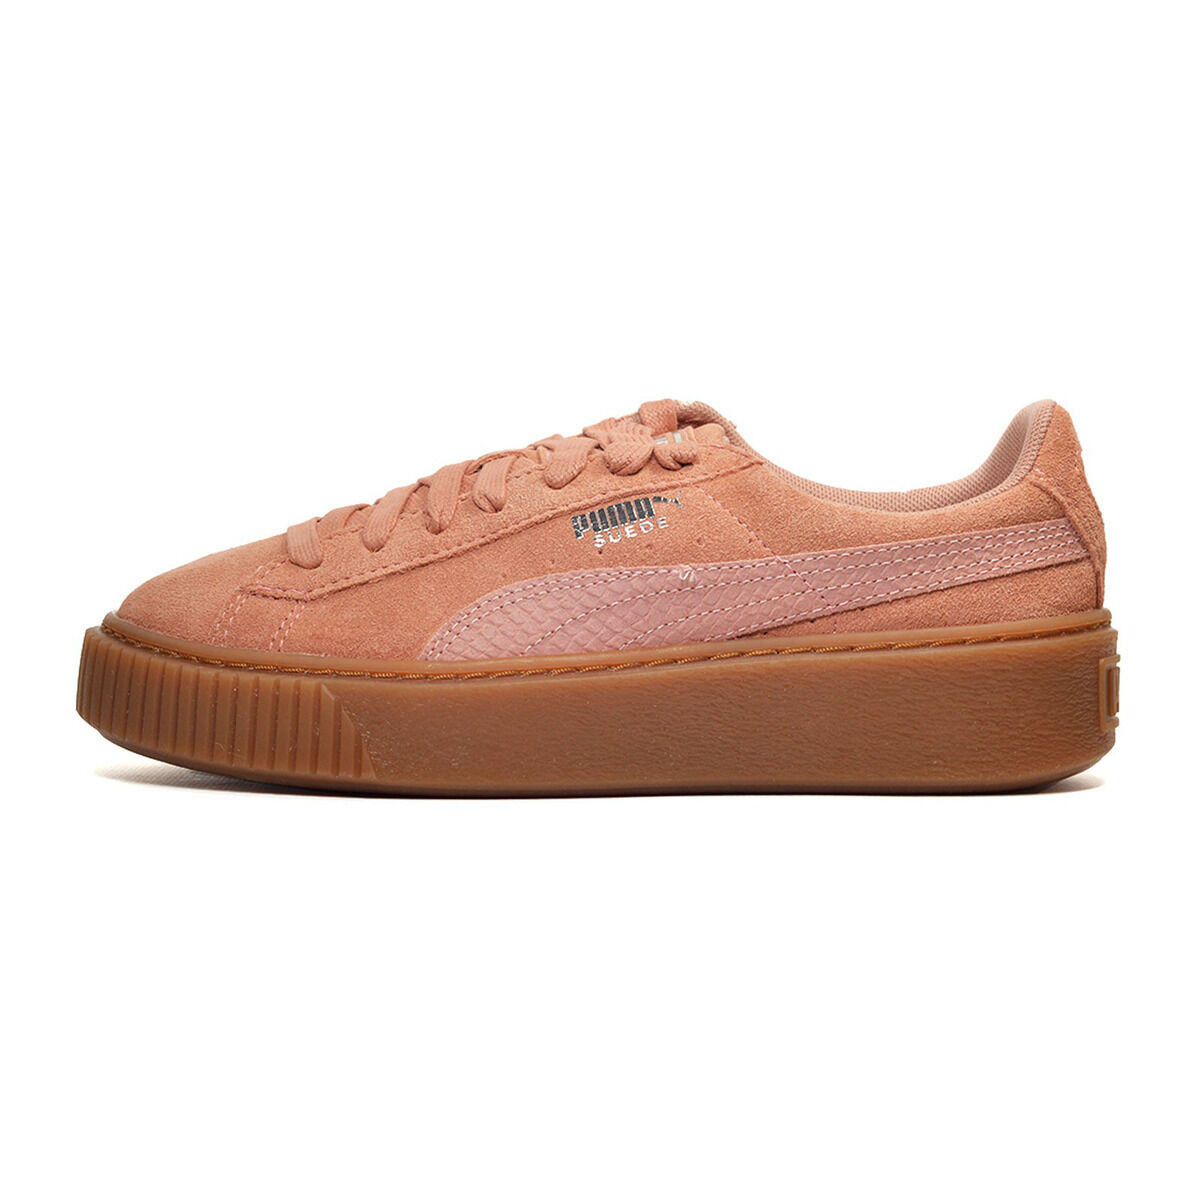 Puma Suede Platform Animal Cameo Brown Pink Gum Women Shoes Sneakers 365109 02 36